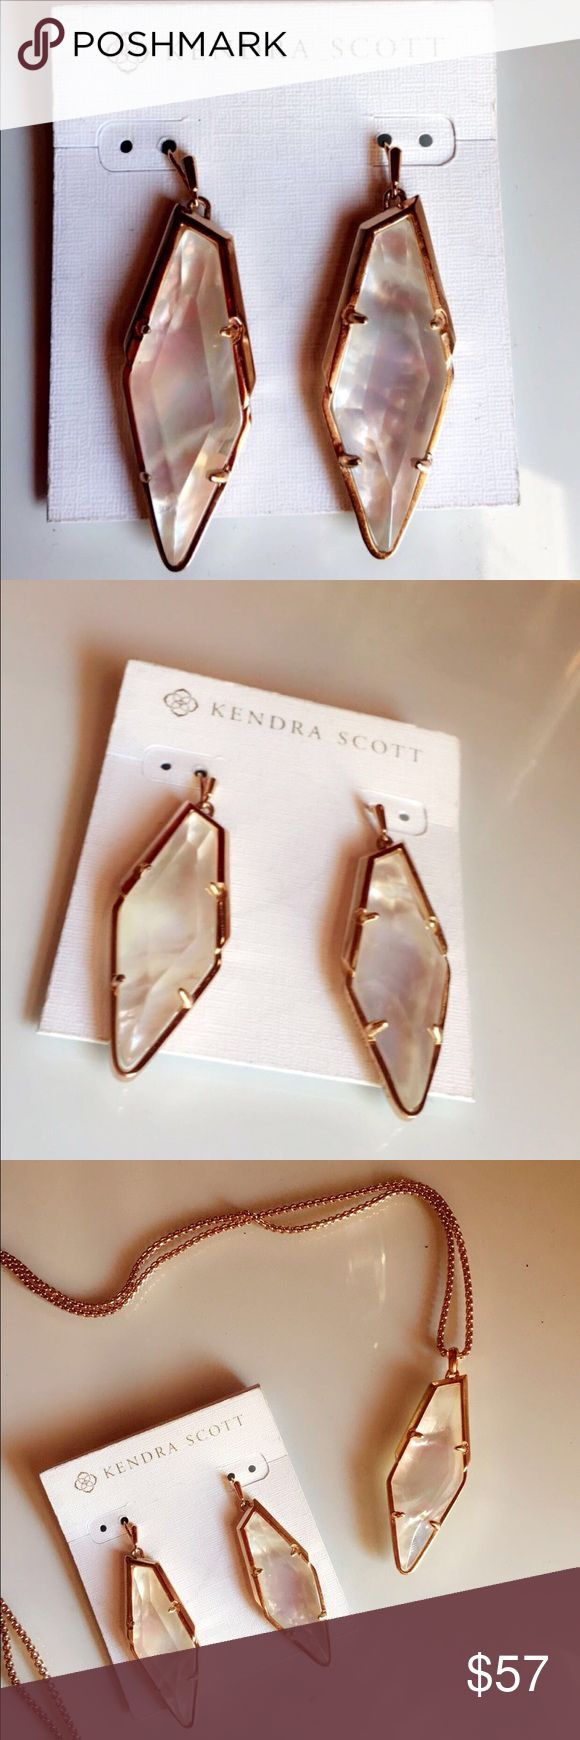 Kendra Scott earrings New Kendra Scott earrings. Rosegold and mother of pearls material. Original retail predice $78. Last picture includes matching necklace. Available for sale as a bundle and individually. (Bundle $130) Kendra Scott Jewelry Earrings